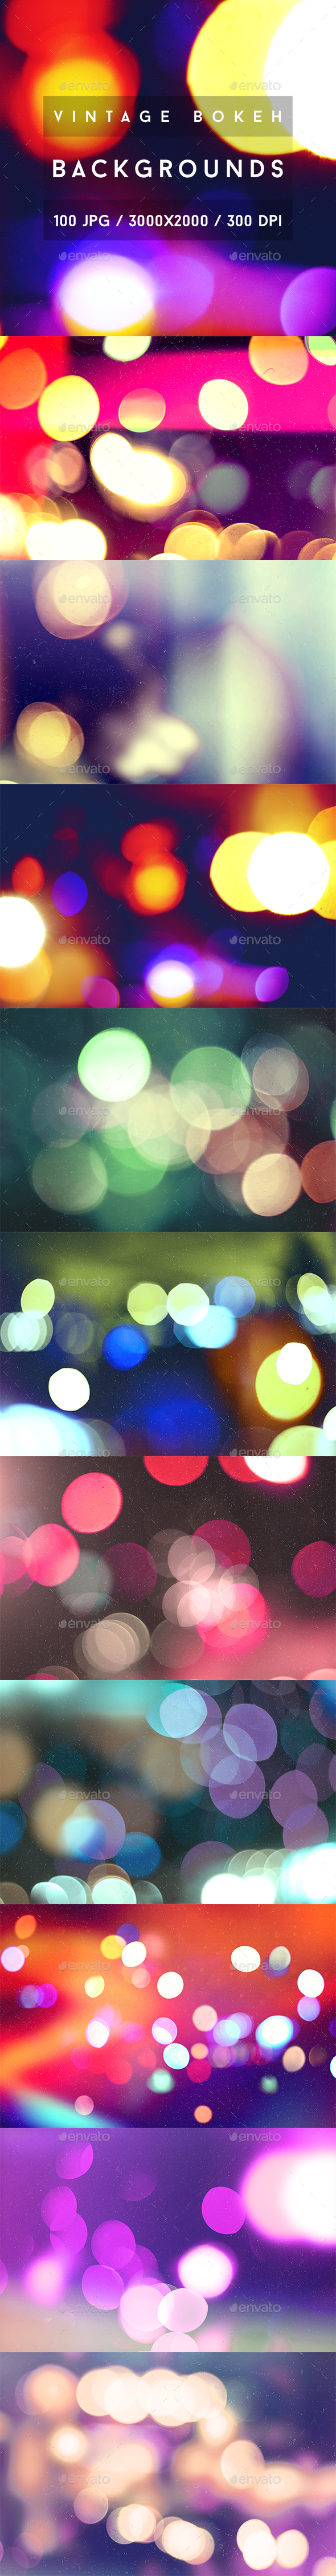 100 Vintage Bokeh Backgrounds - Abstract Backgrounds